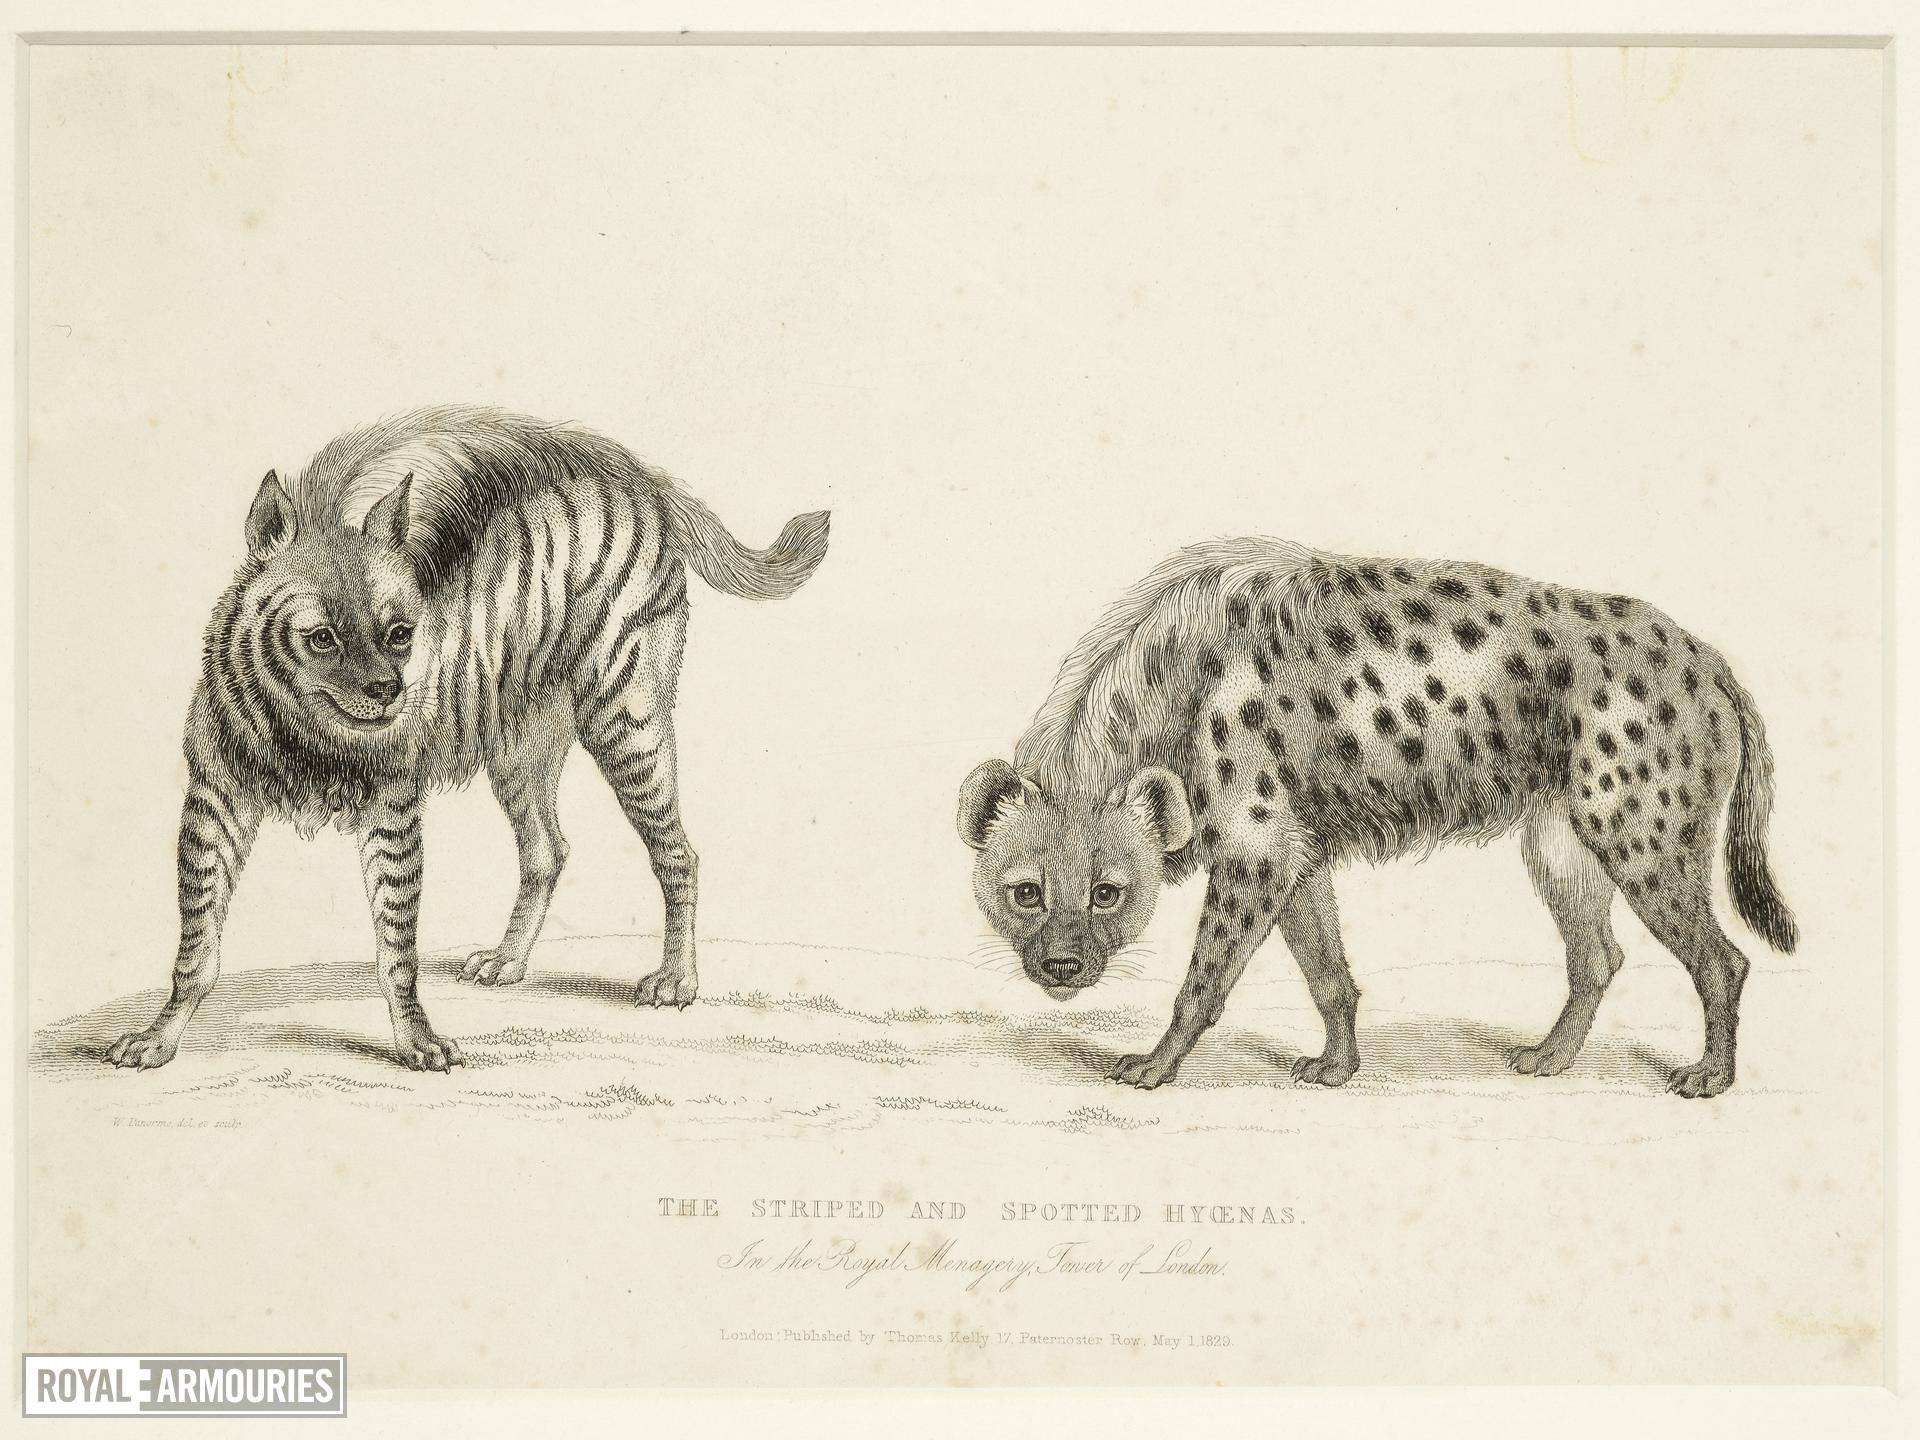 Print Entitled 'The Striped and Spotted Hyoenas', dated 1 May, 1830.